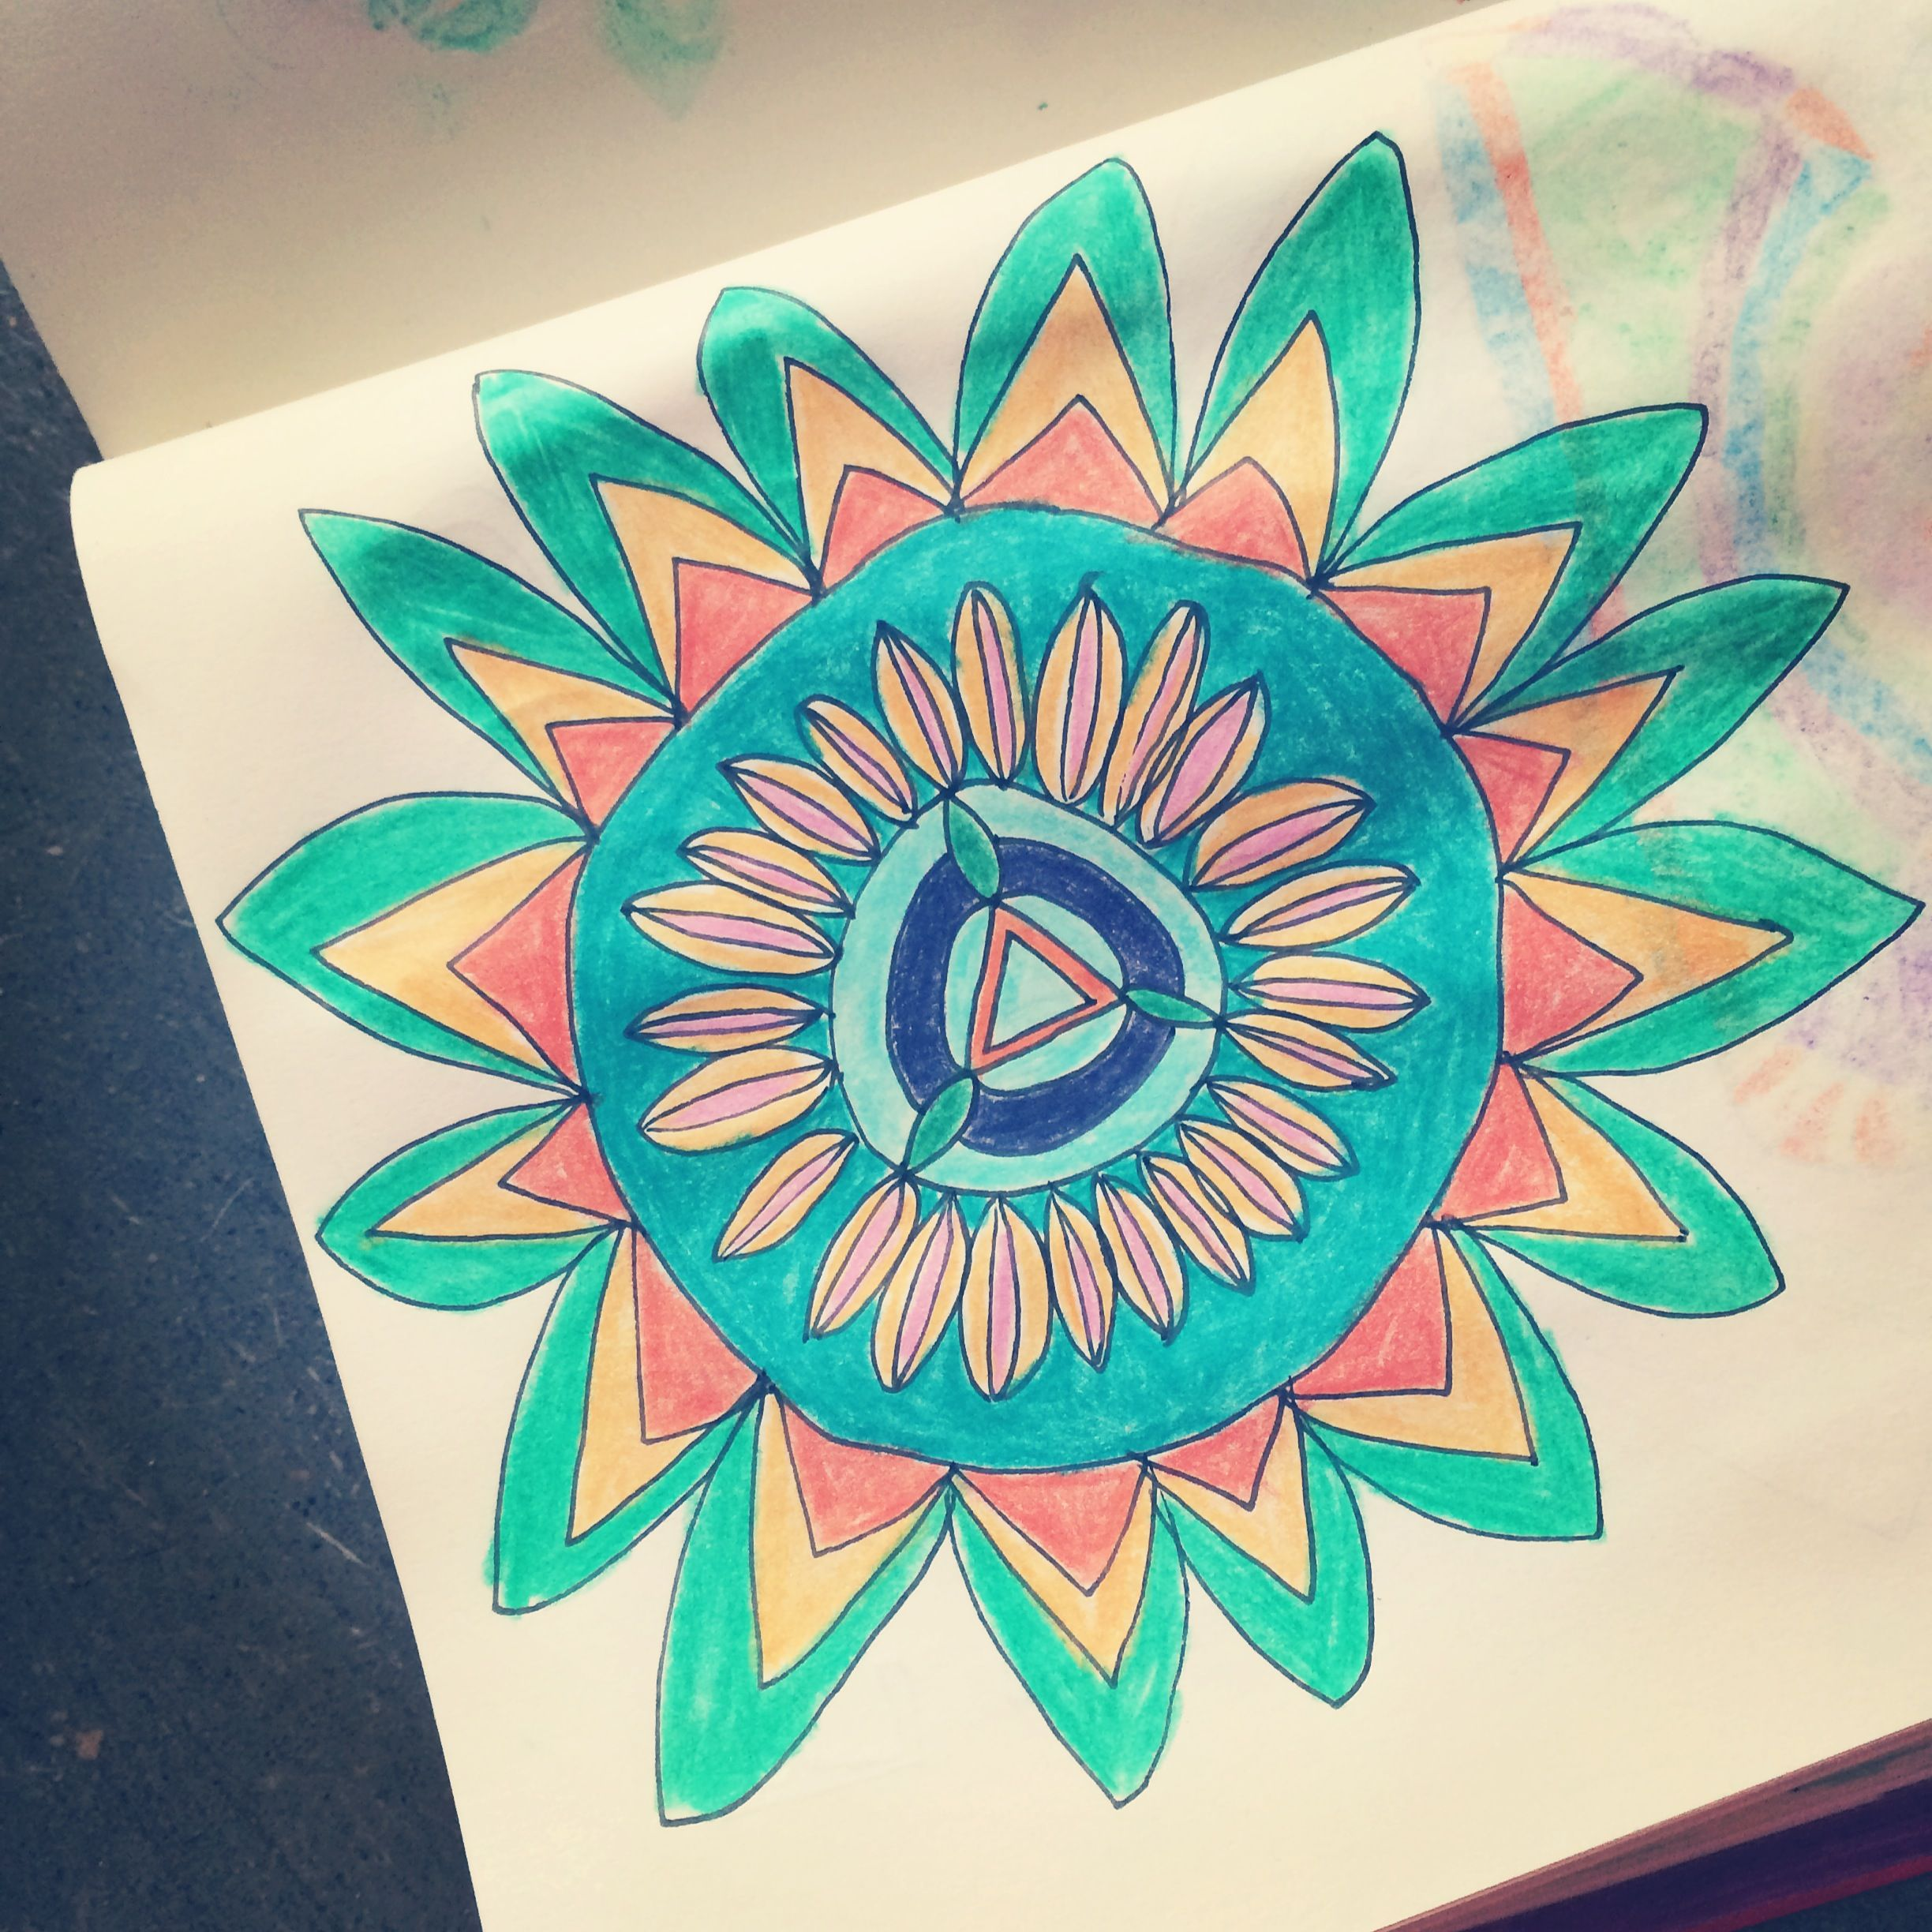 How To Draw Mandalas For Healing, Personal Growth and ...